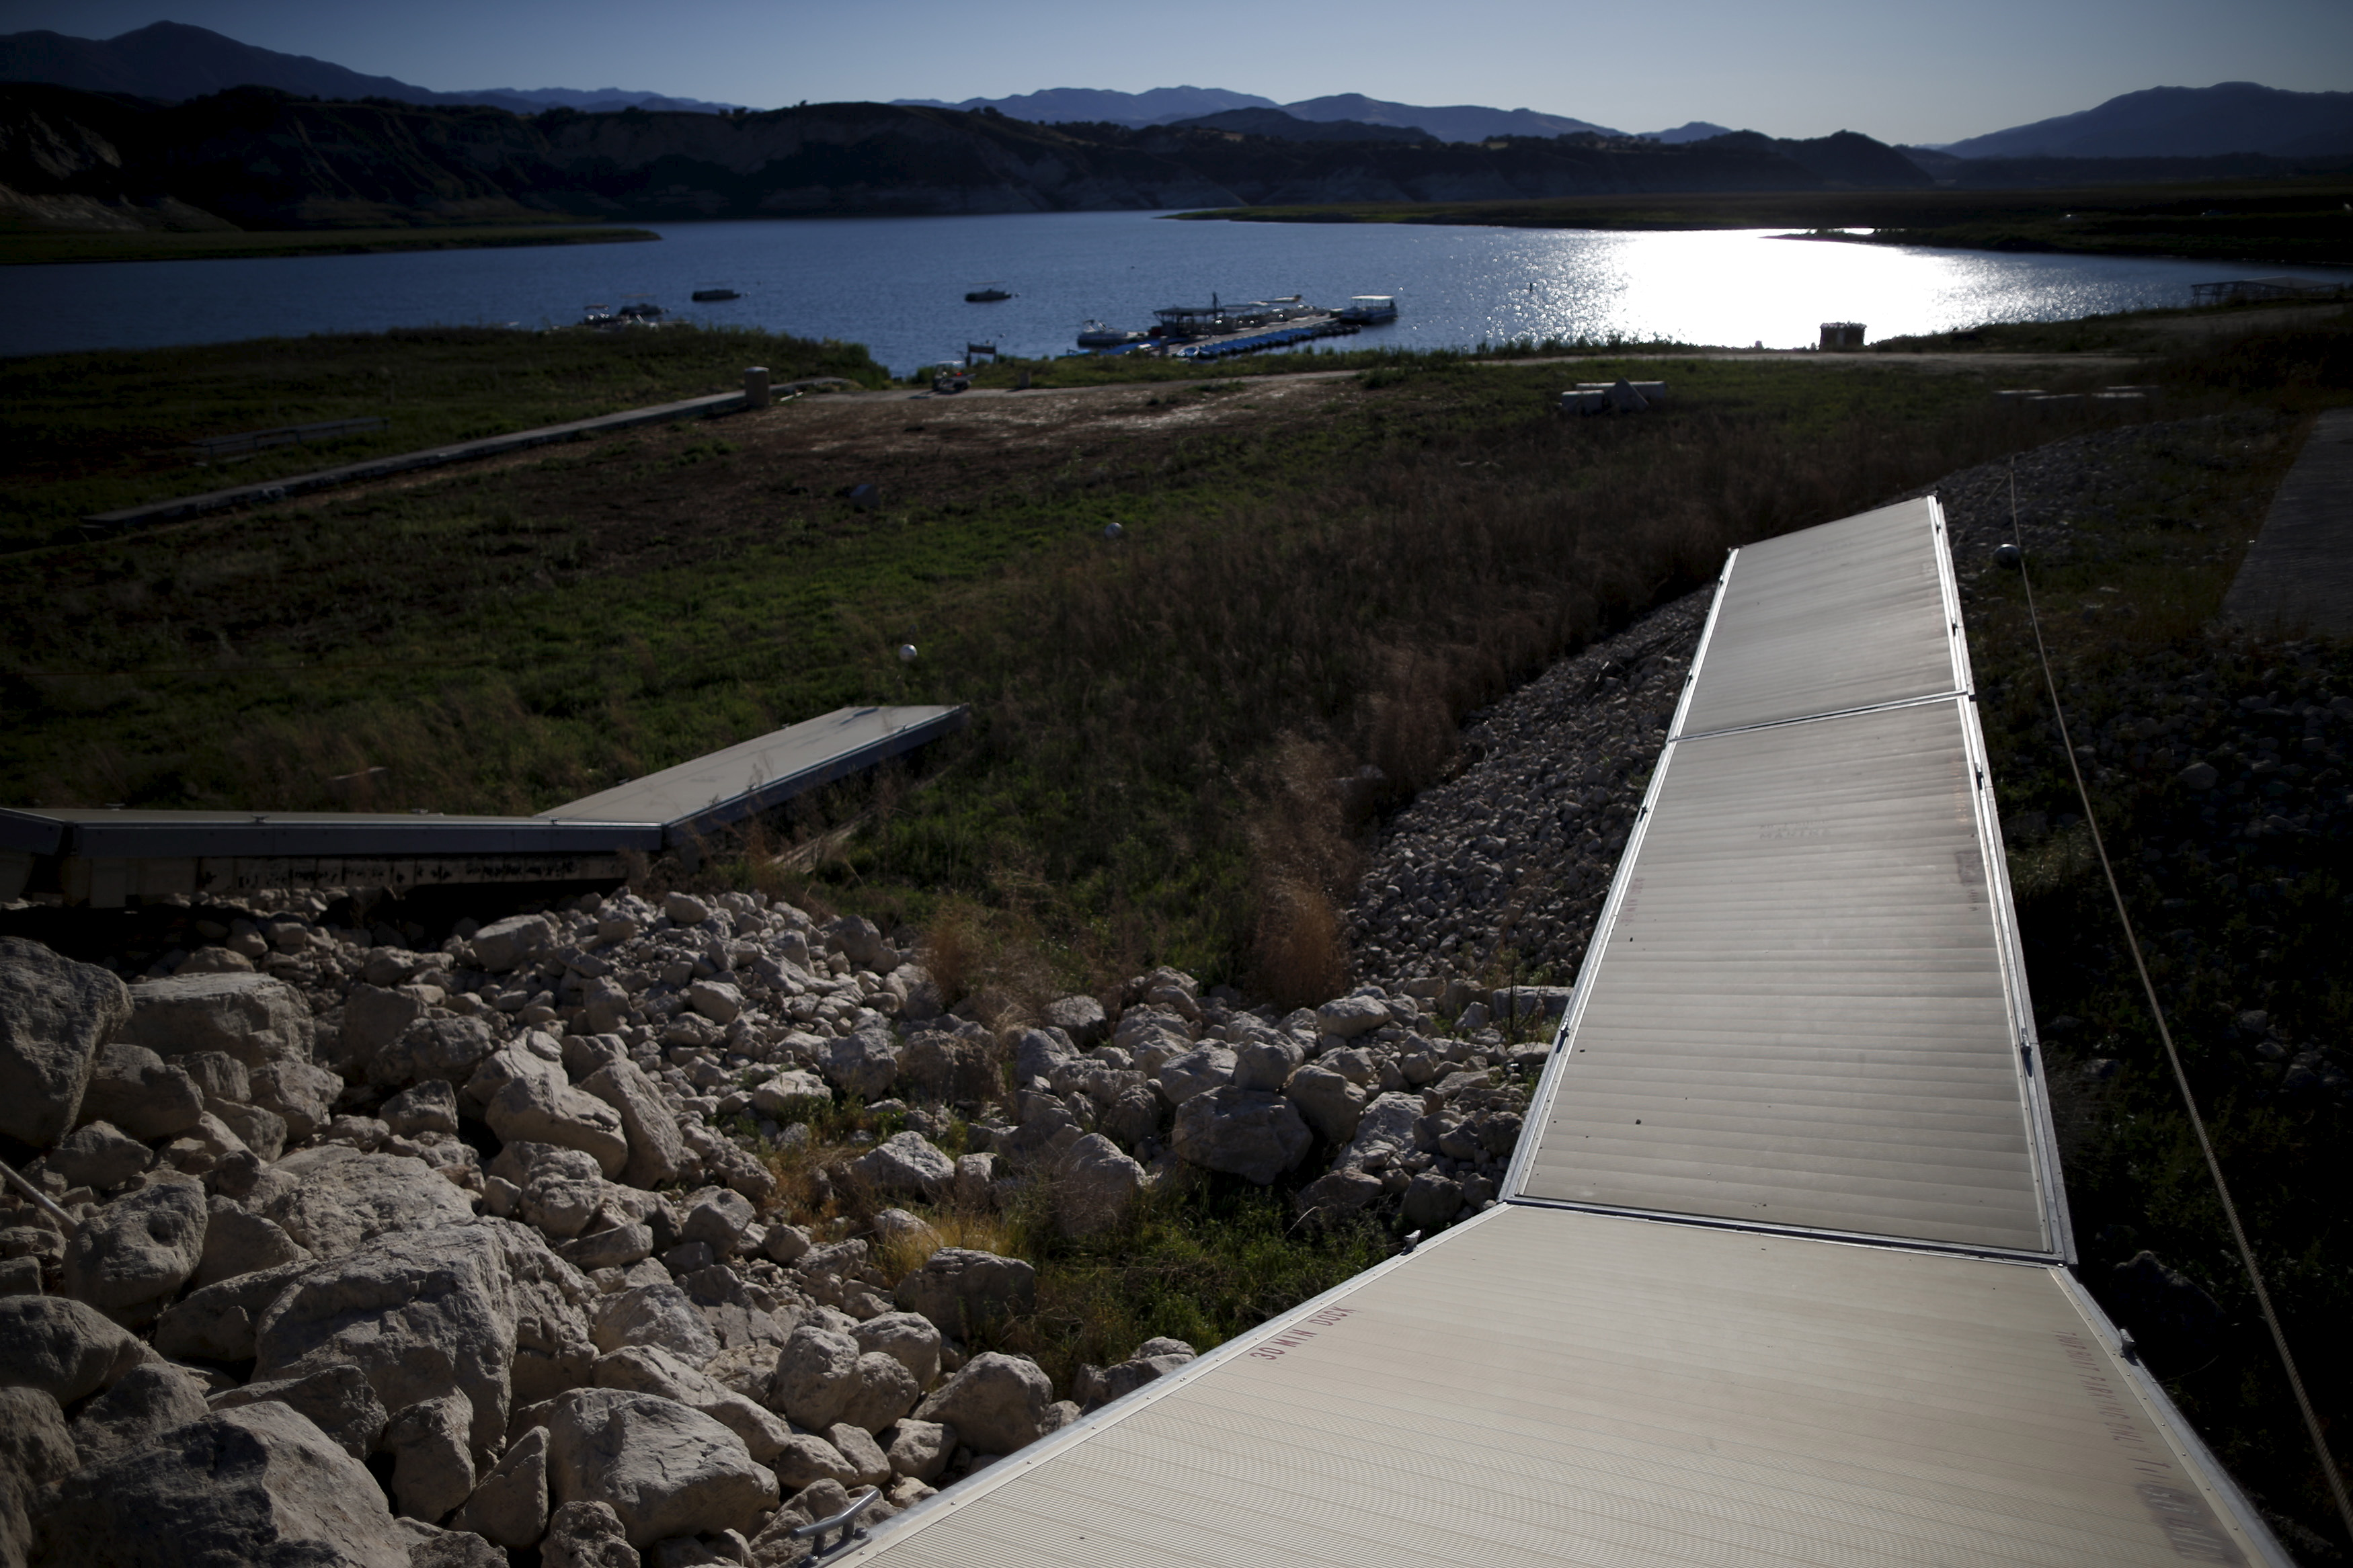 Docks that collapsed when the water receded are seen at Lake Cachuma in Santa Barbara, California March 27, 2015. Photo by Lucy Nicholson/Reuters